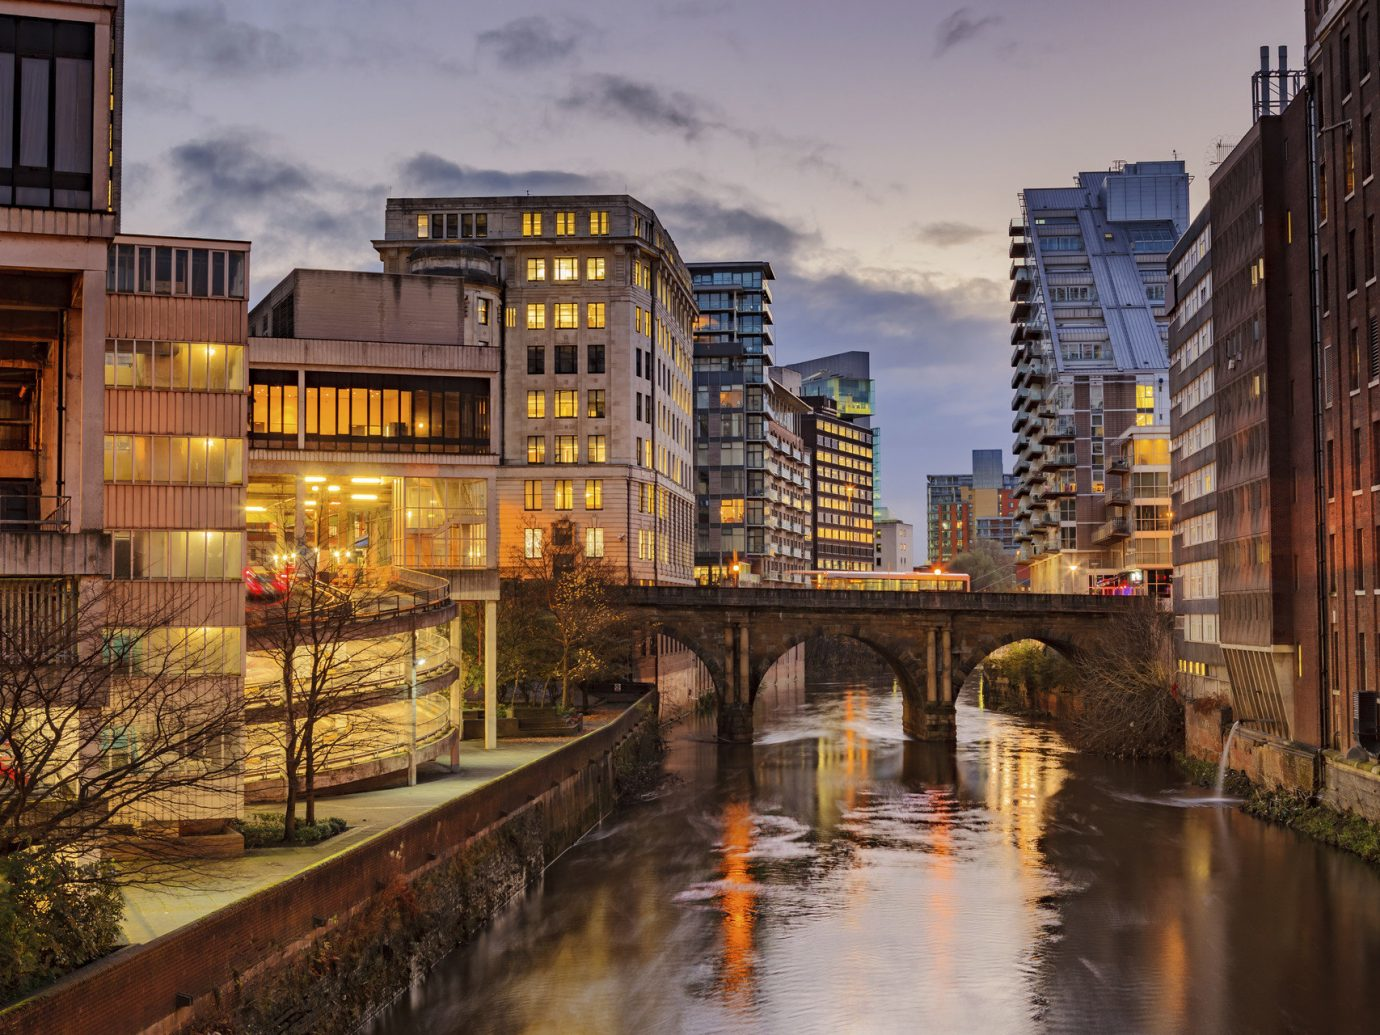 London outdoor geographical feature reflection City cityscape urban area Town neighbourhood human settlement waterway Canal evening River Downtown